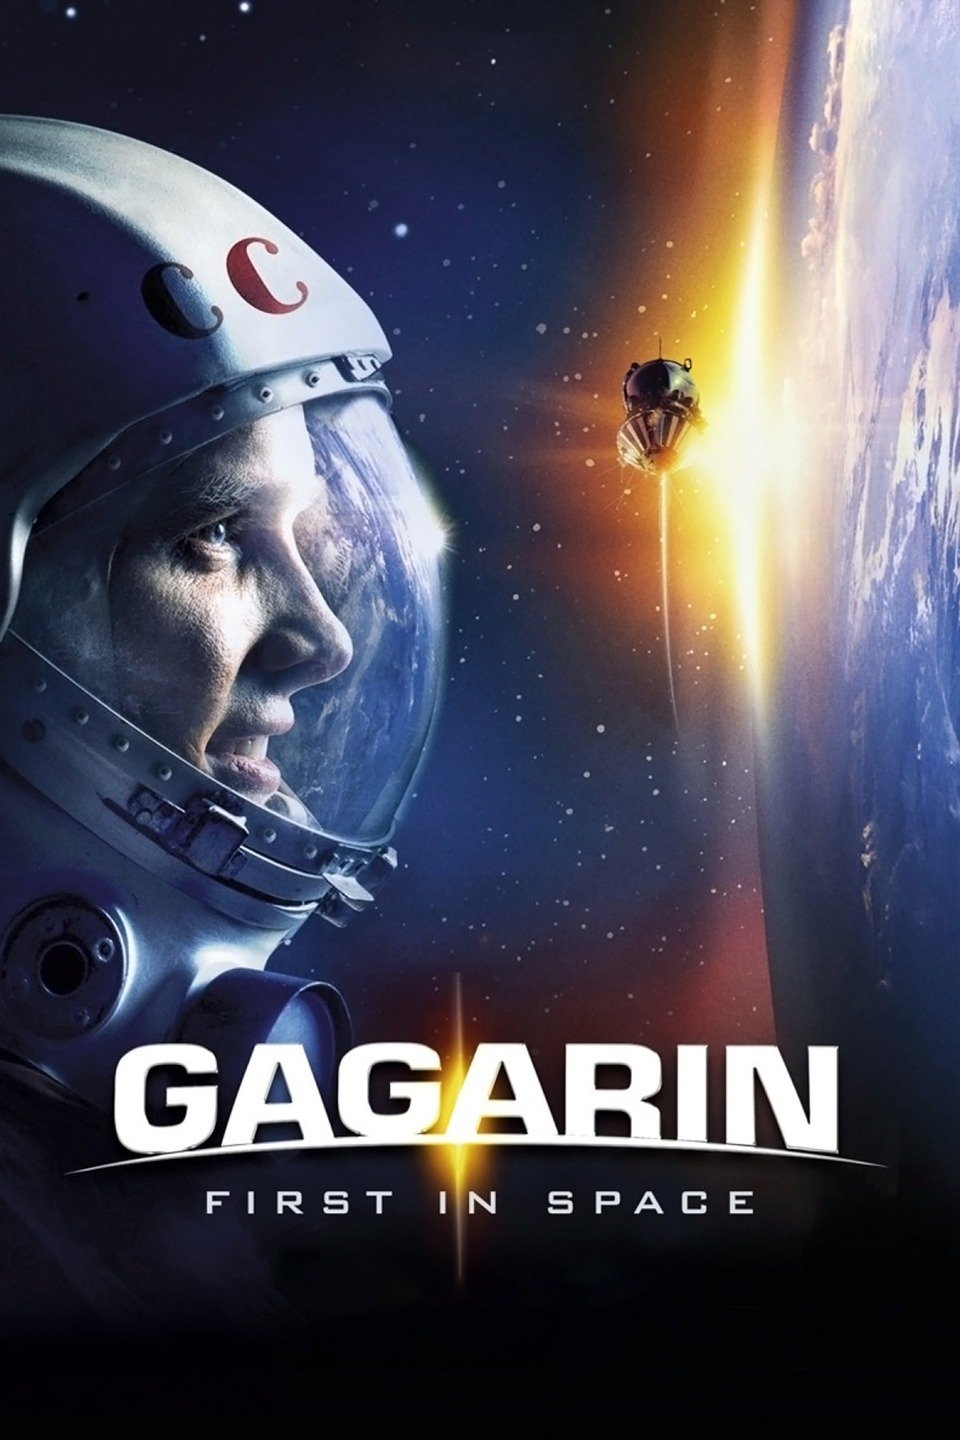 Резултат со слика за Gagarin: First in Space (2013)